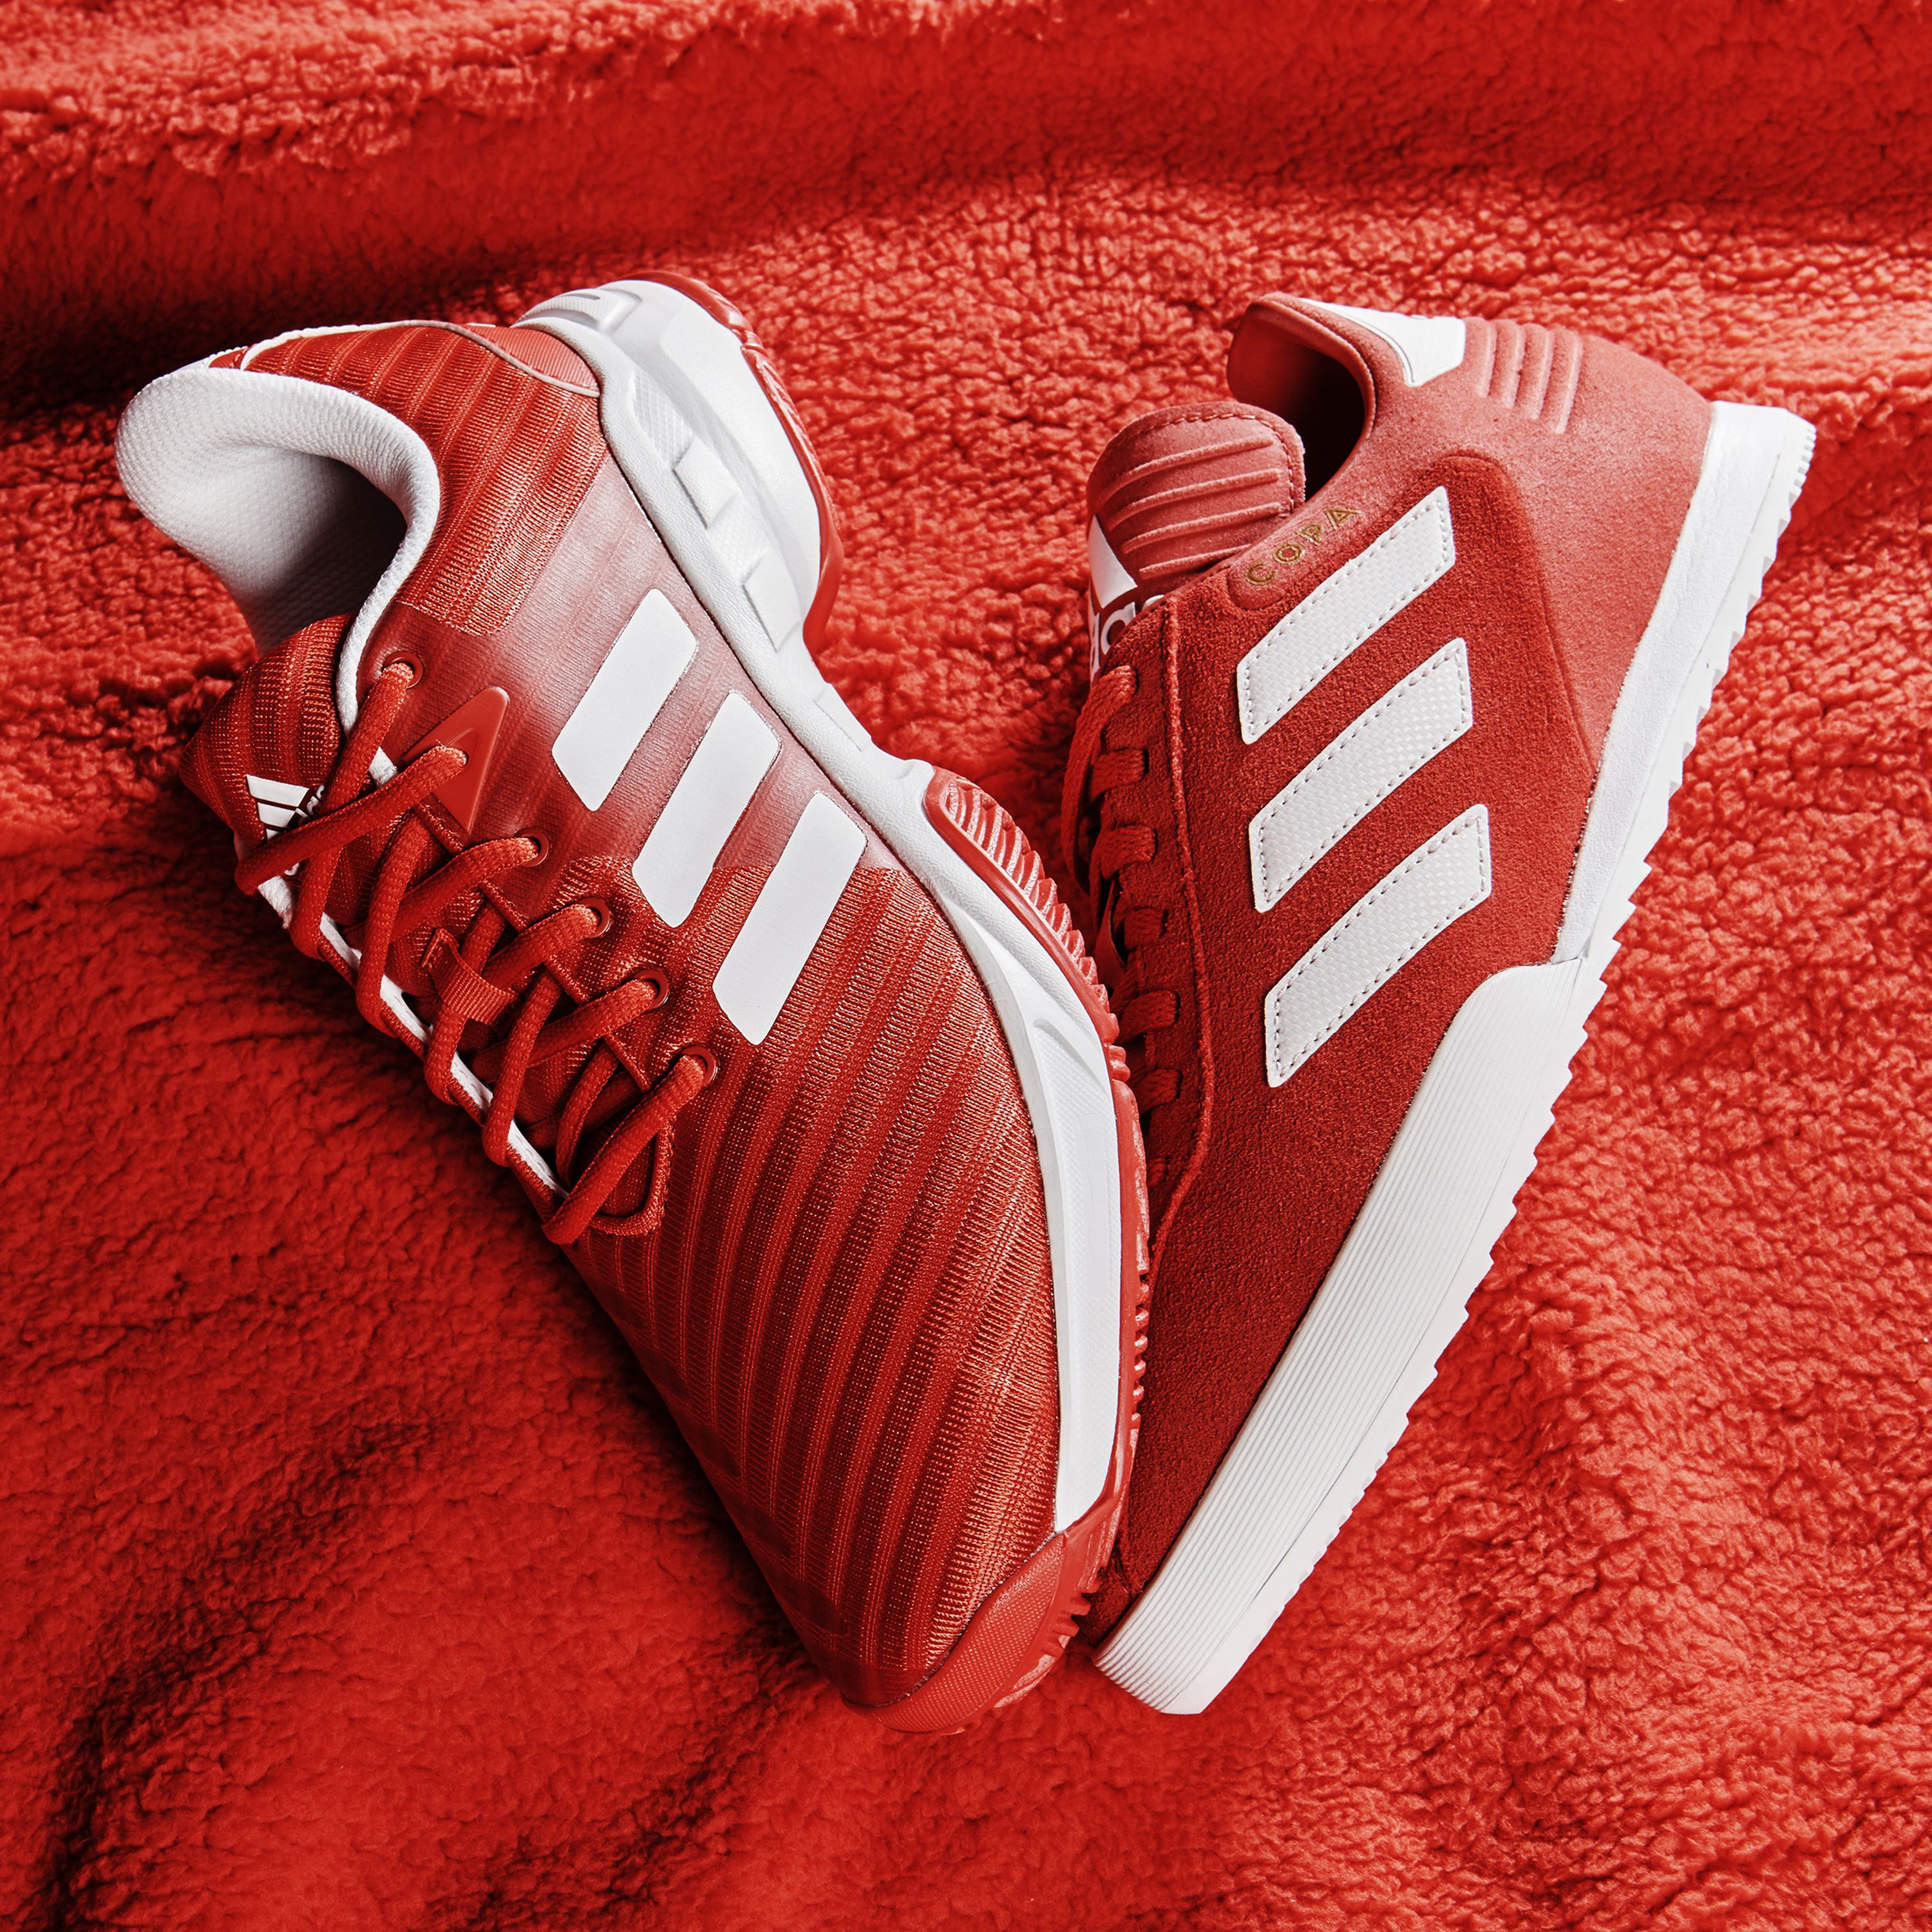 b2930b08e420bf Exclusive style in super soft suede. The adidas Copa Super Suede trainers  are an exclusive